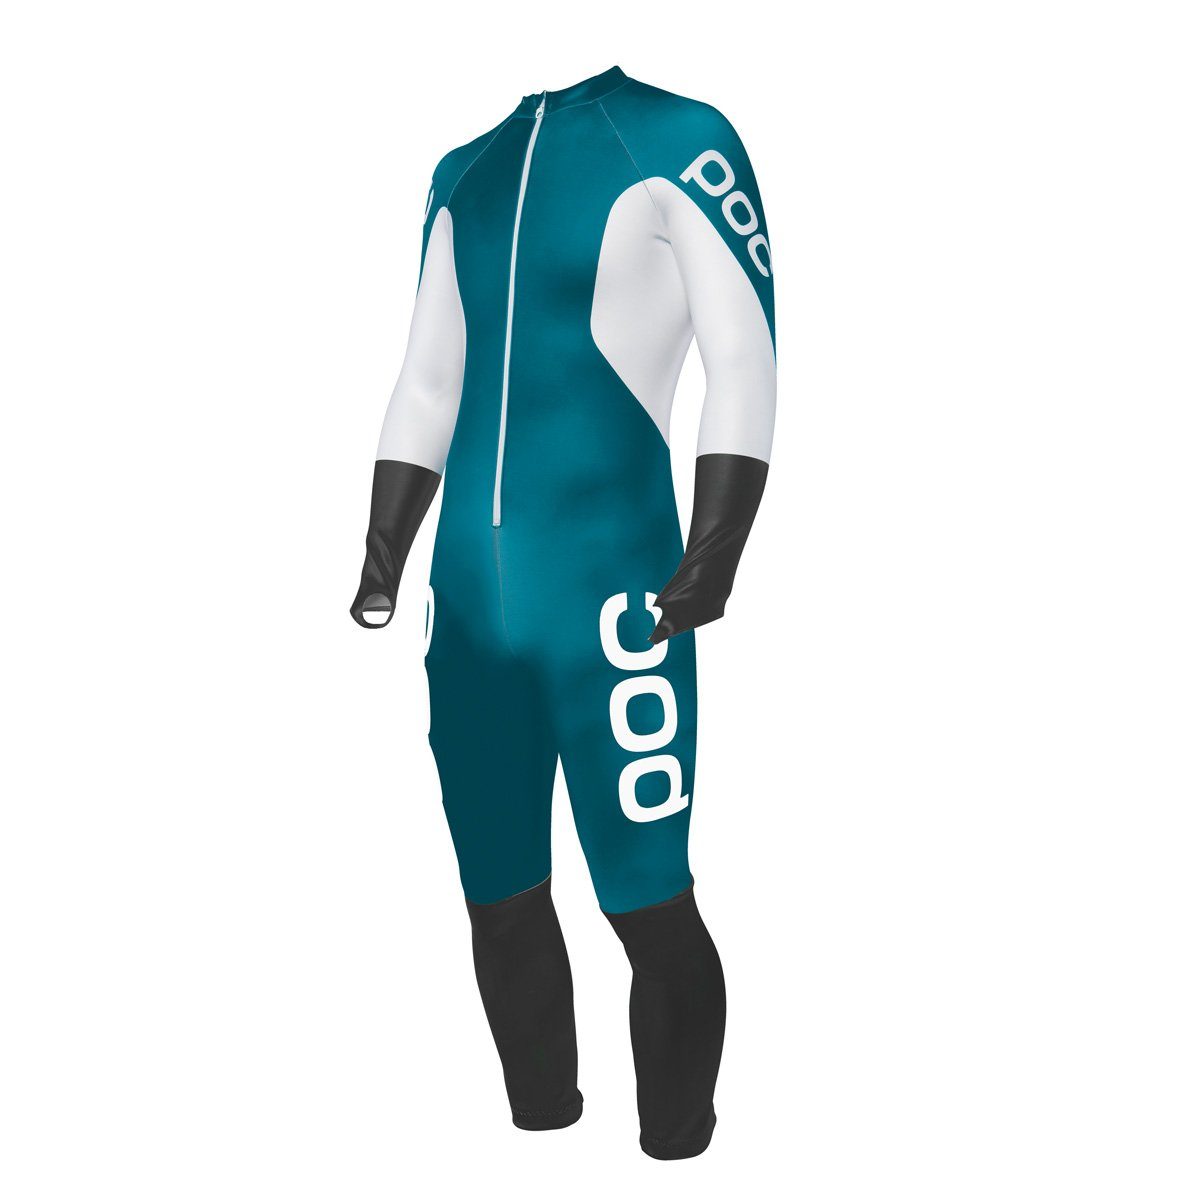 POC Skin GS Jr Suit Butylene Blue/Hydrogen White 140 by POC